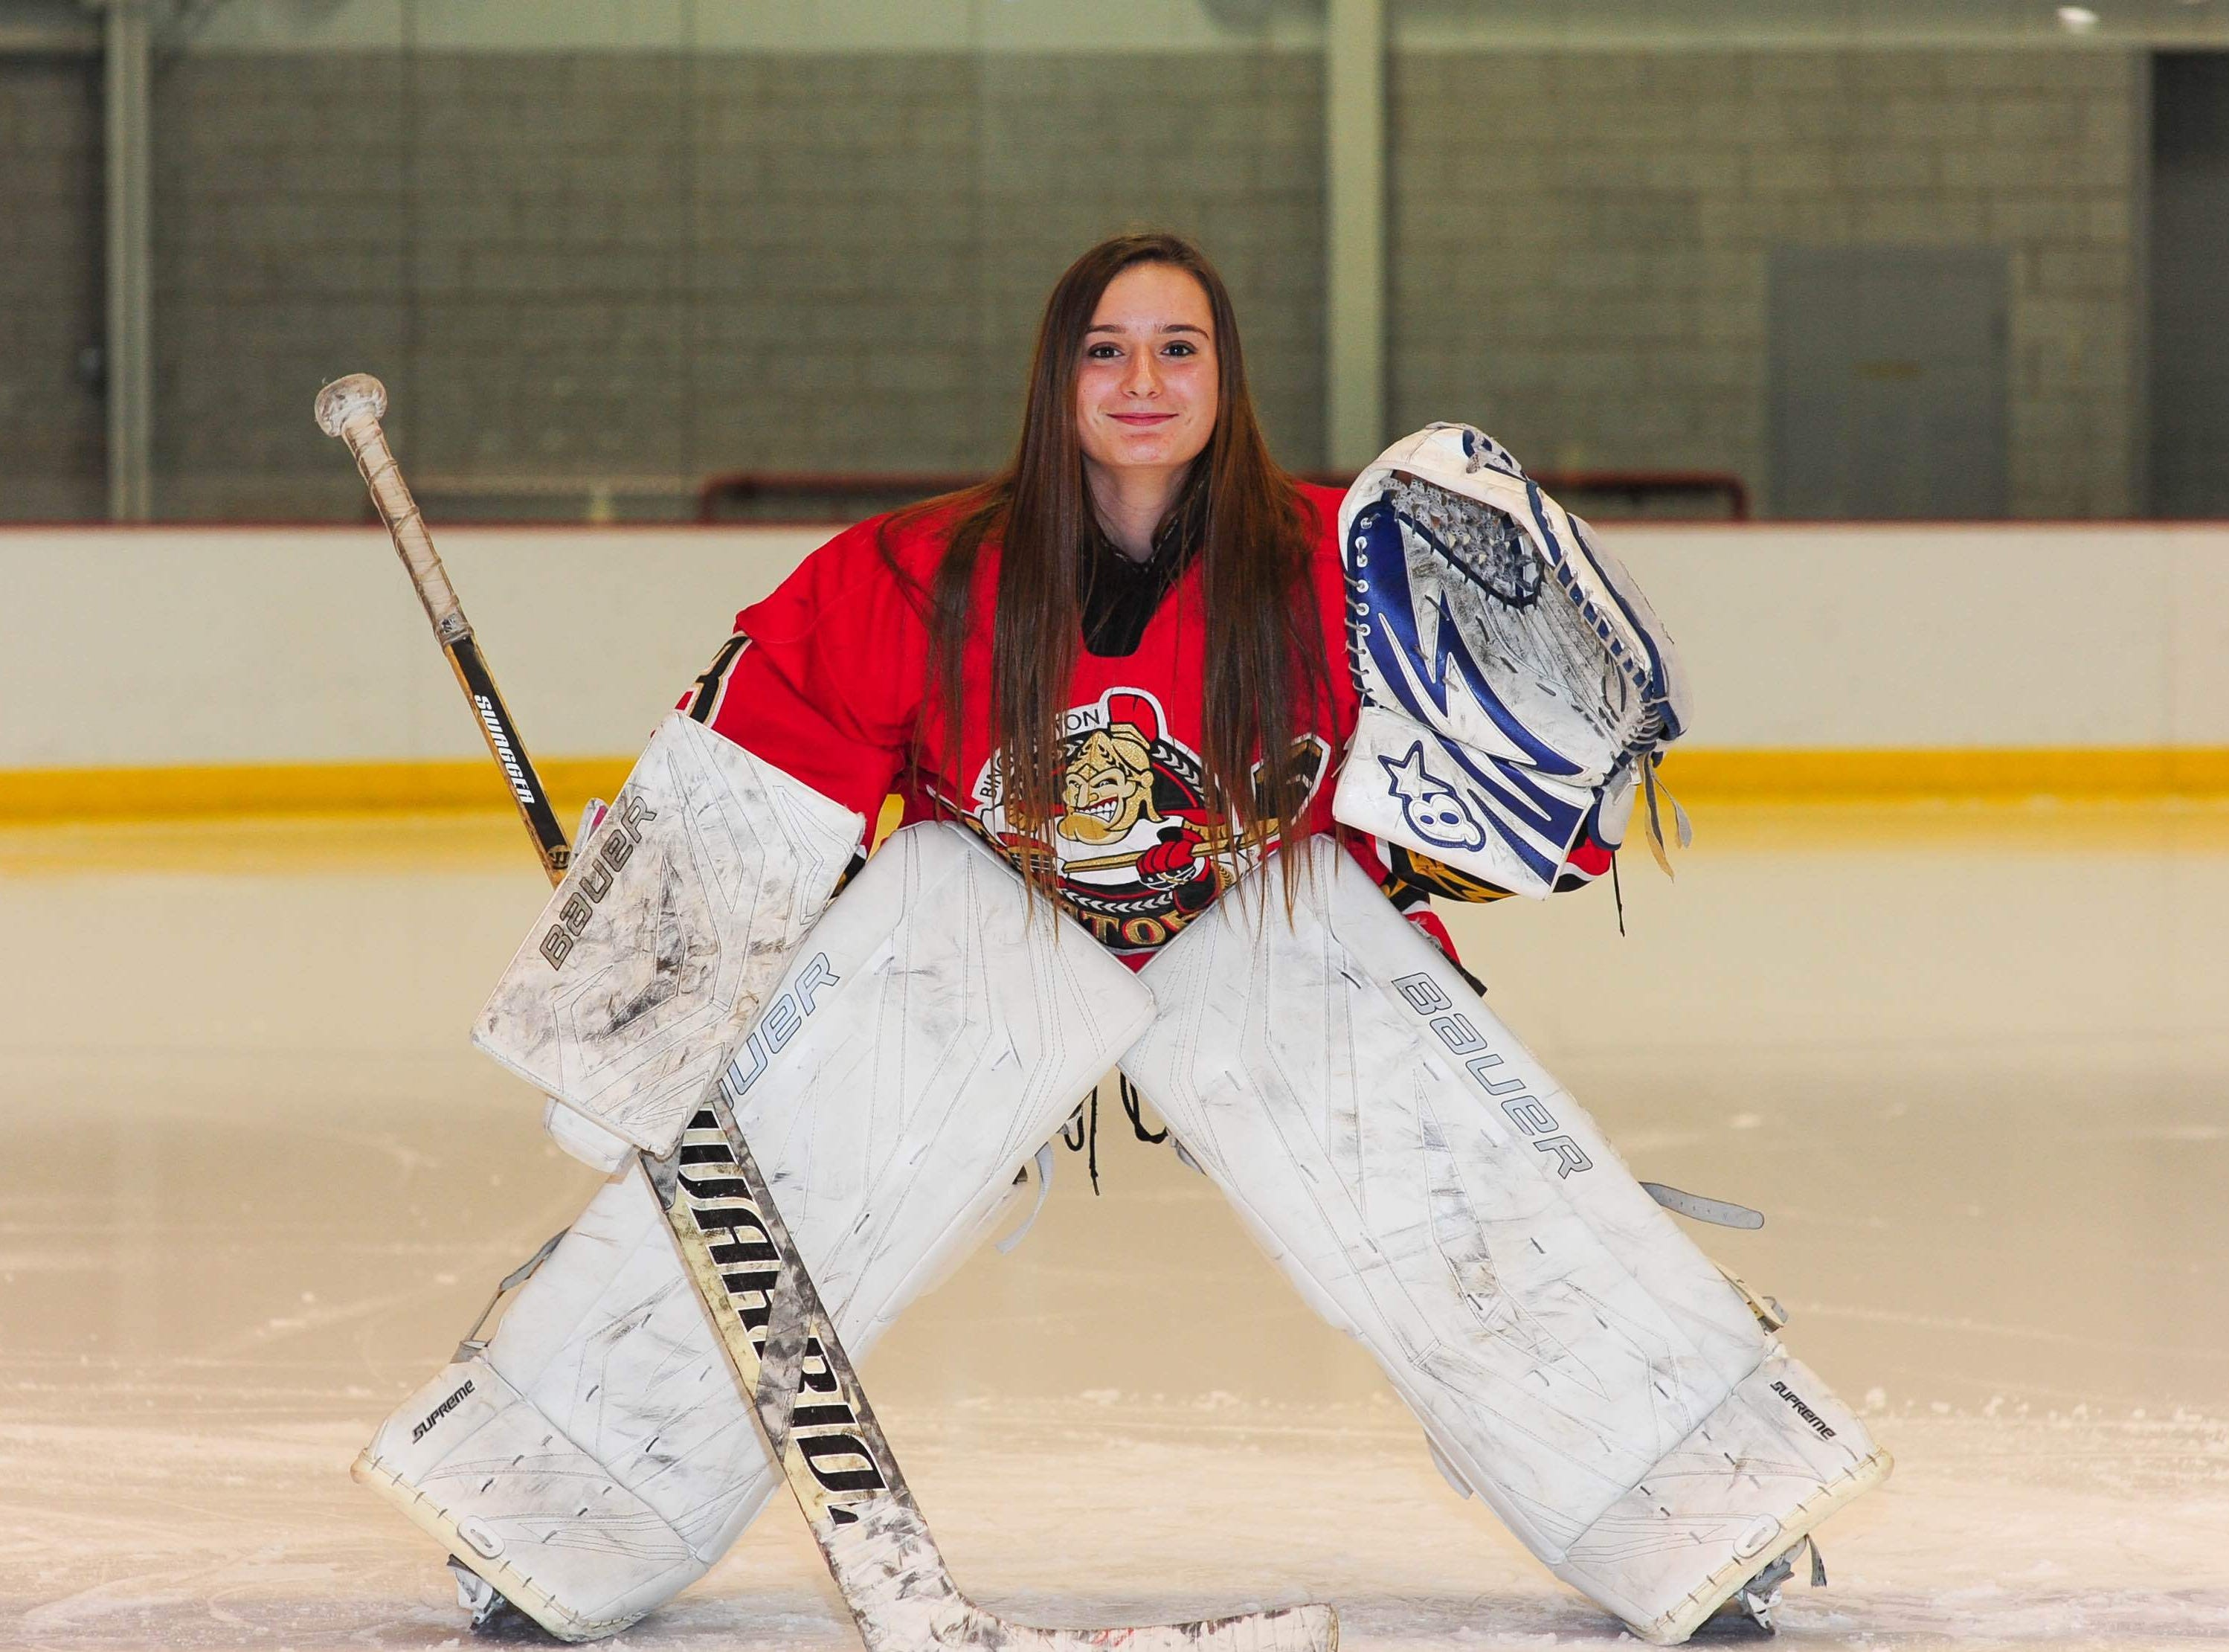 2015: In addition to playing for her high school team at Maine-Endwell, Rebecca Reynolds is the goalie for the Southern Tier Hockey Association's 18-Under Jr. B-Sens travel team.